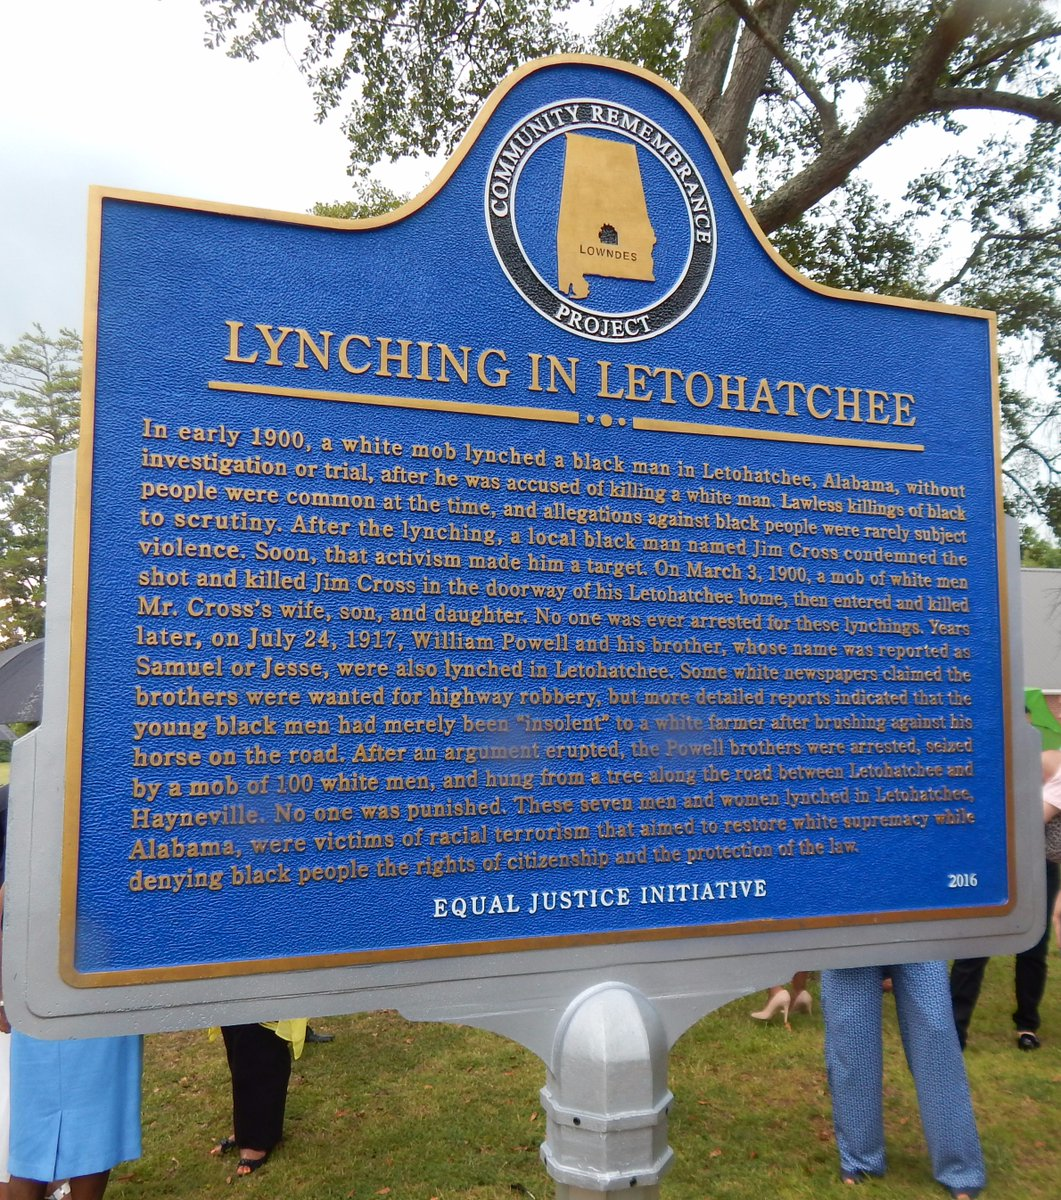 """A royal blue historical marker, likely made out of metal, reads """"Lynching in Letohatchee"""" in capital letters. """"Equal Justice Institute"""" is in white capitals at the bottom of the marker. In the background are grass and tree branches. People's legs are visible toward the edges of the photo."""